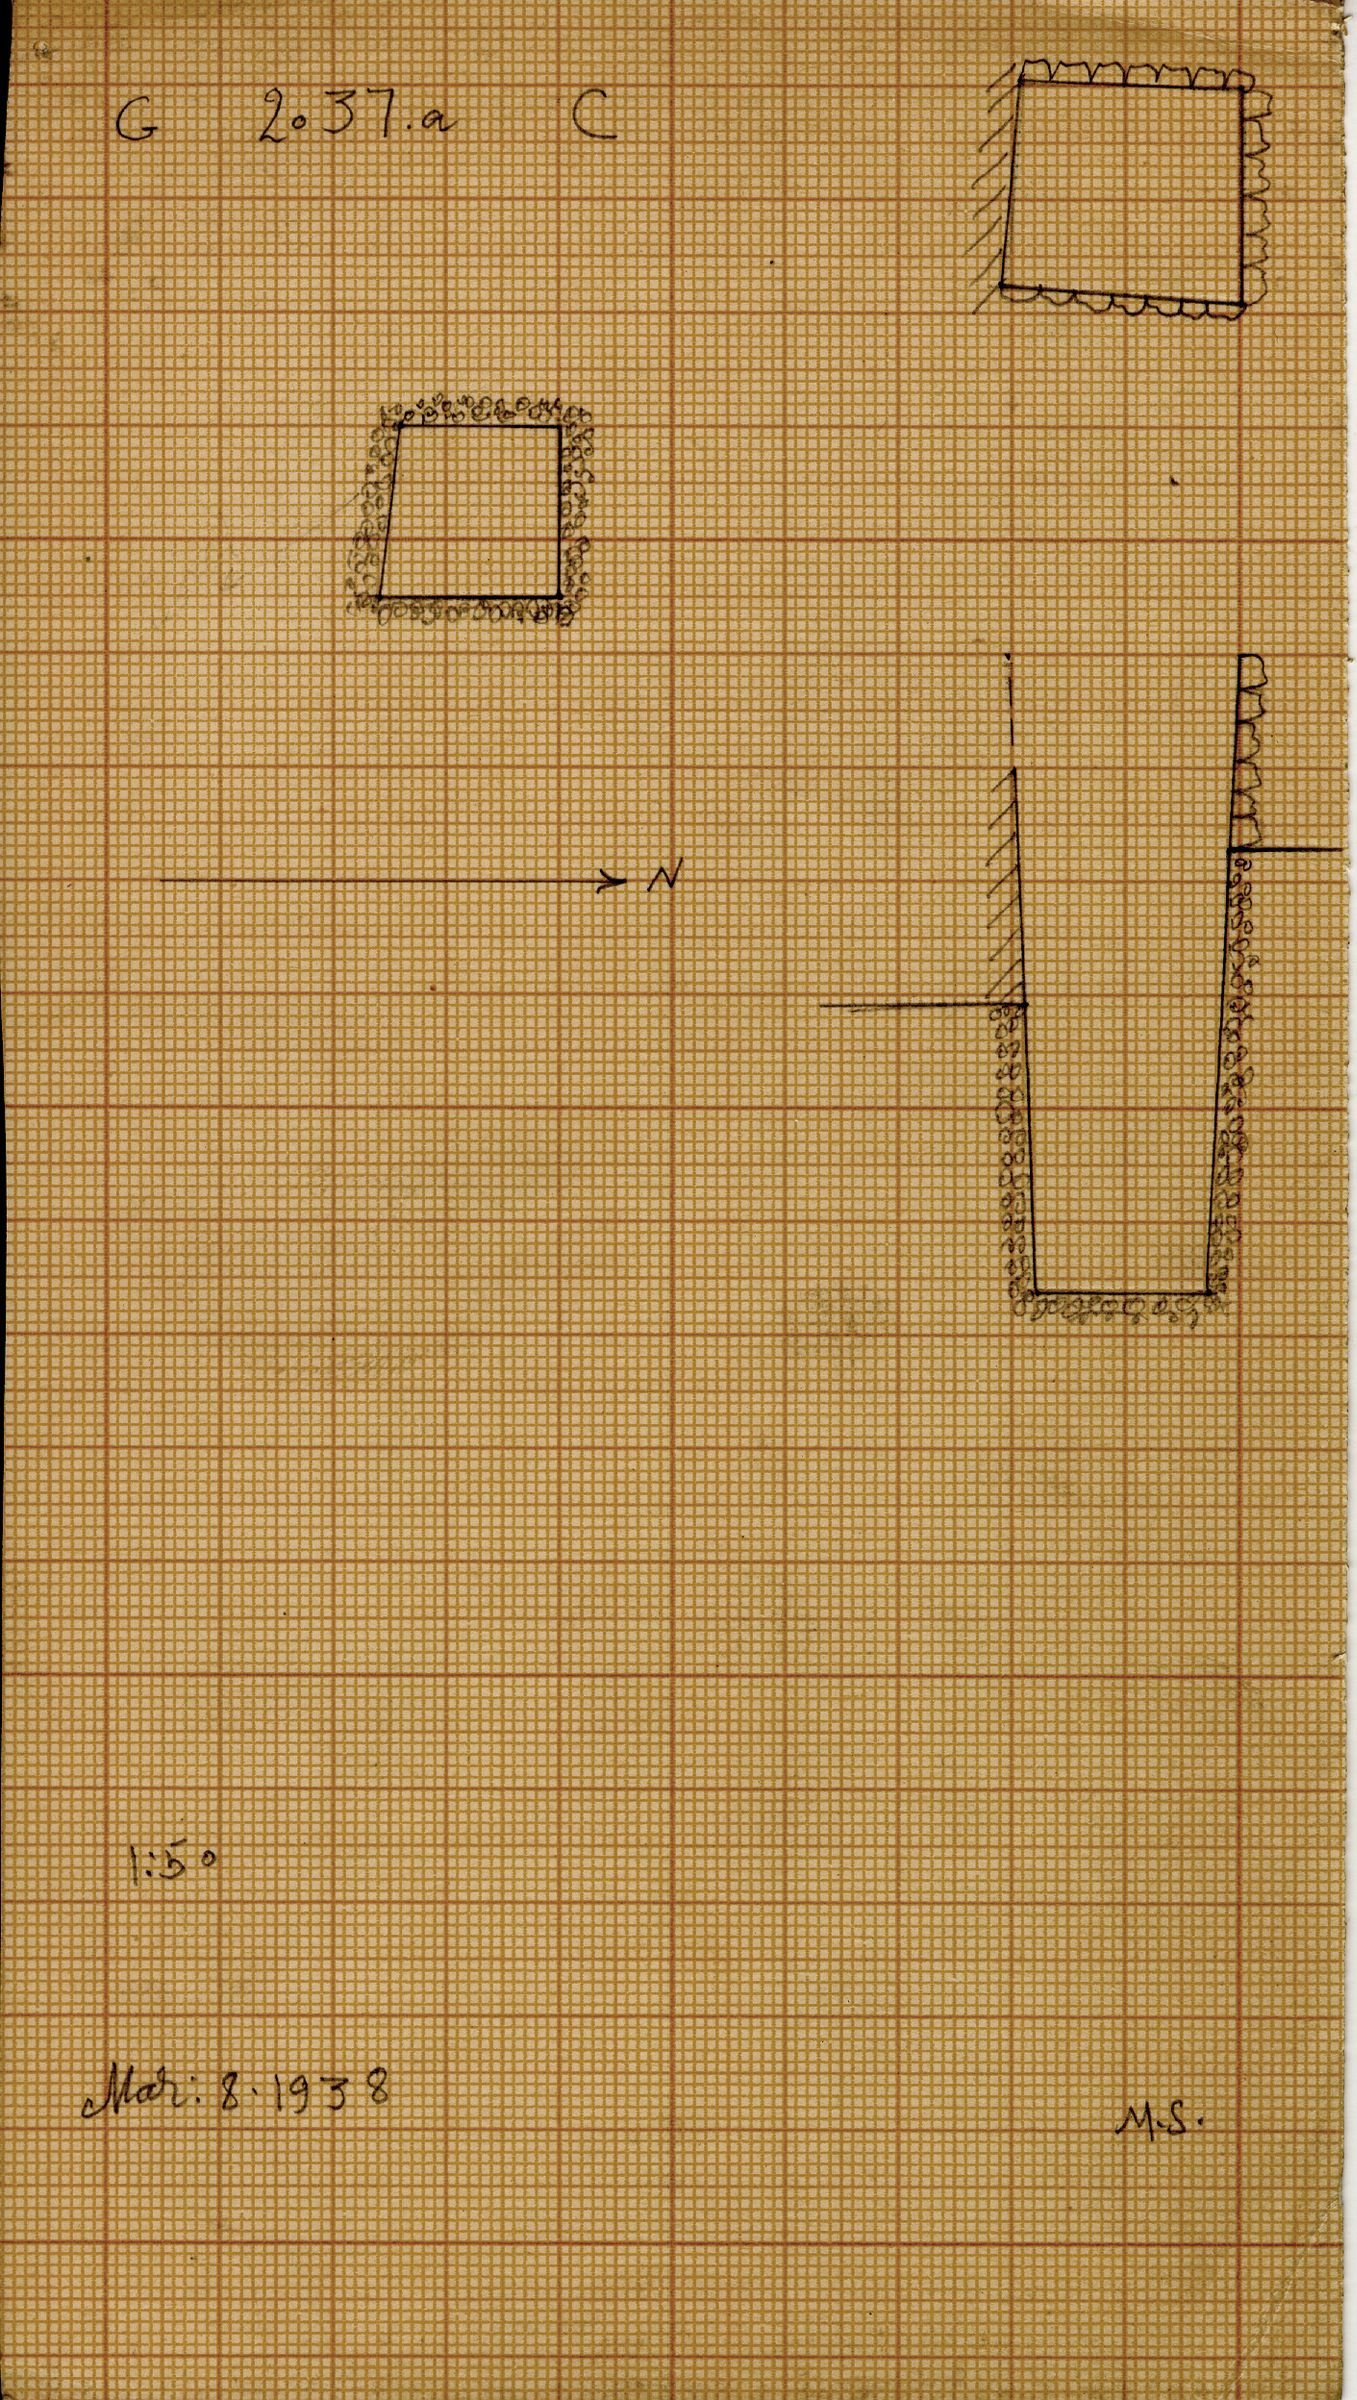 Maps and plans: G 2037a, Shaft C